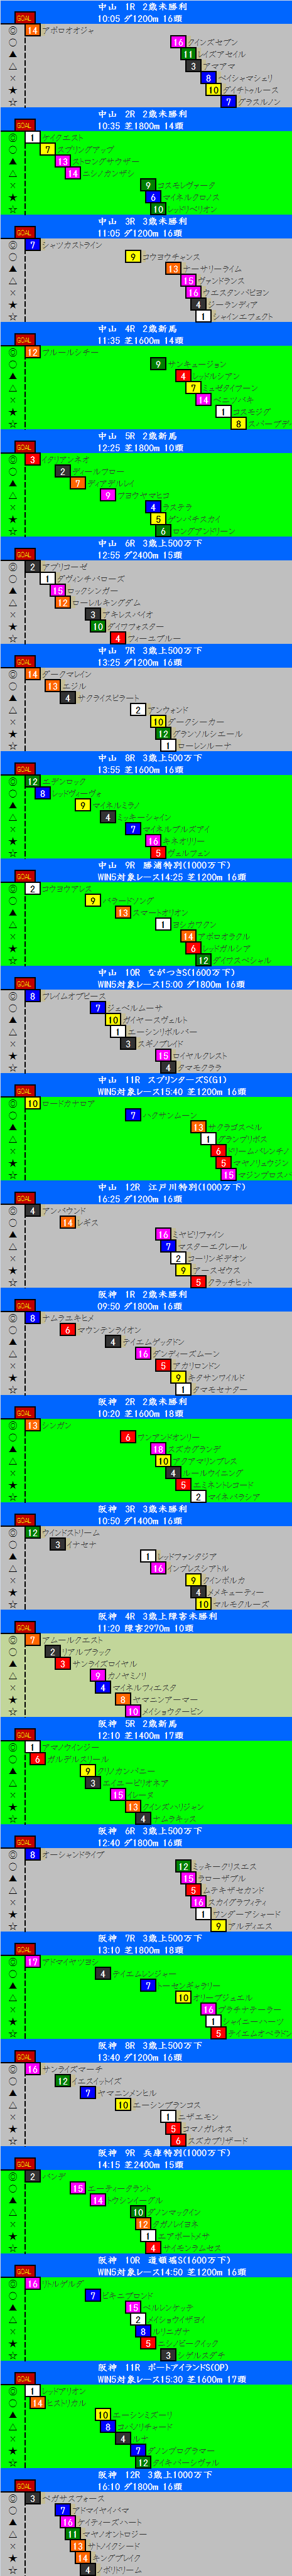 20130929.png